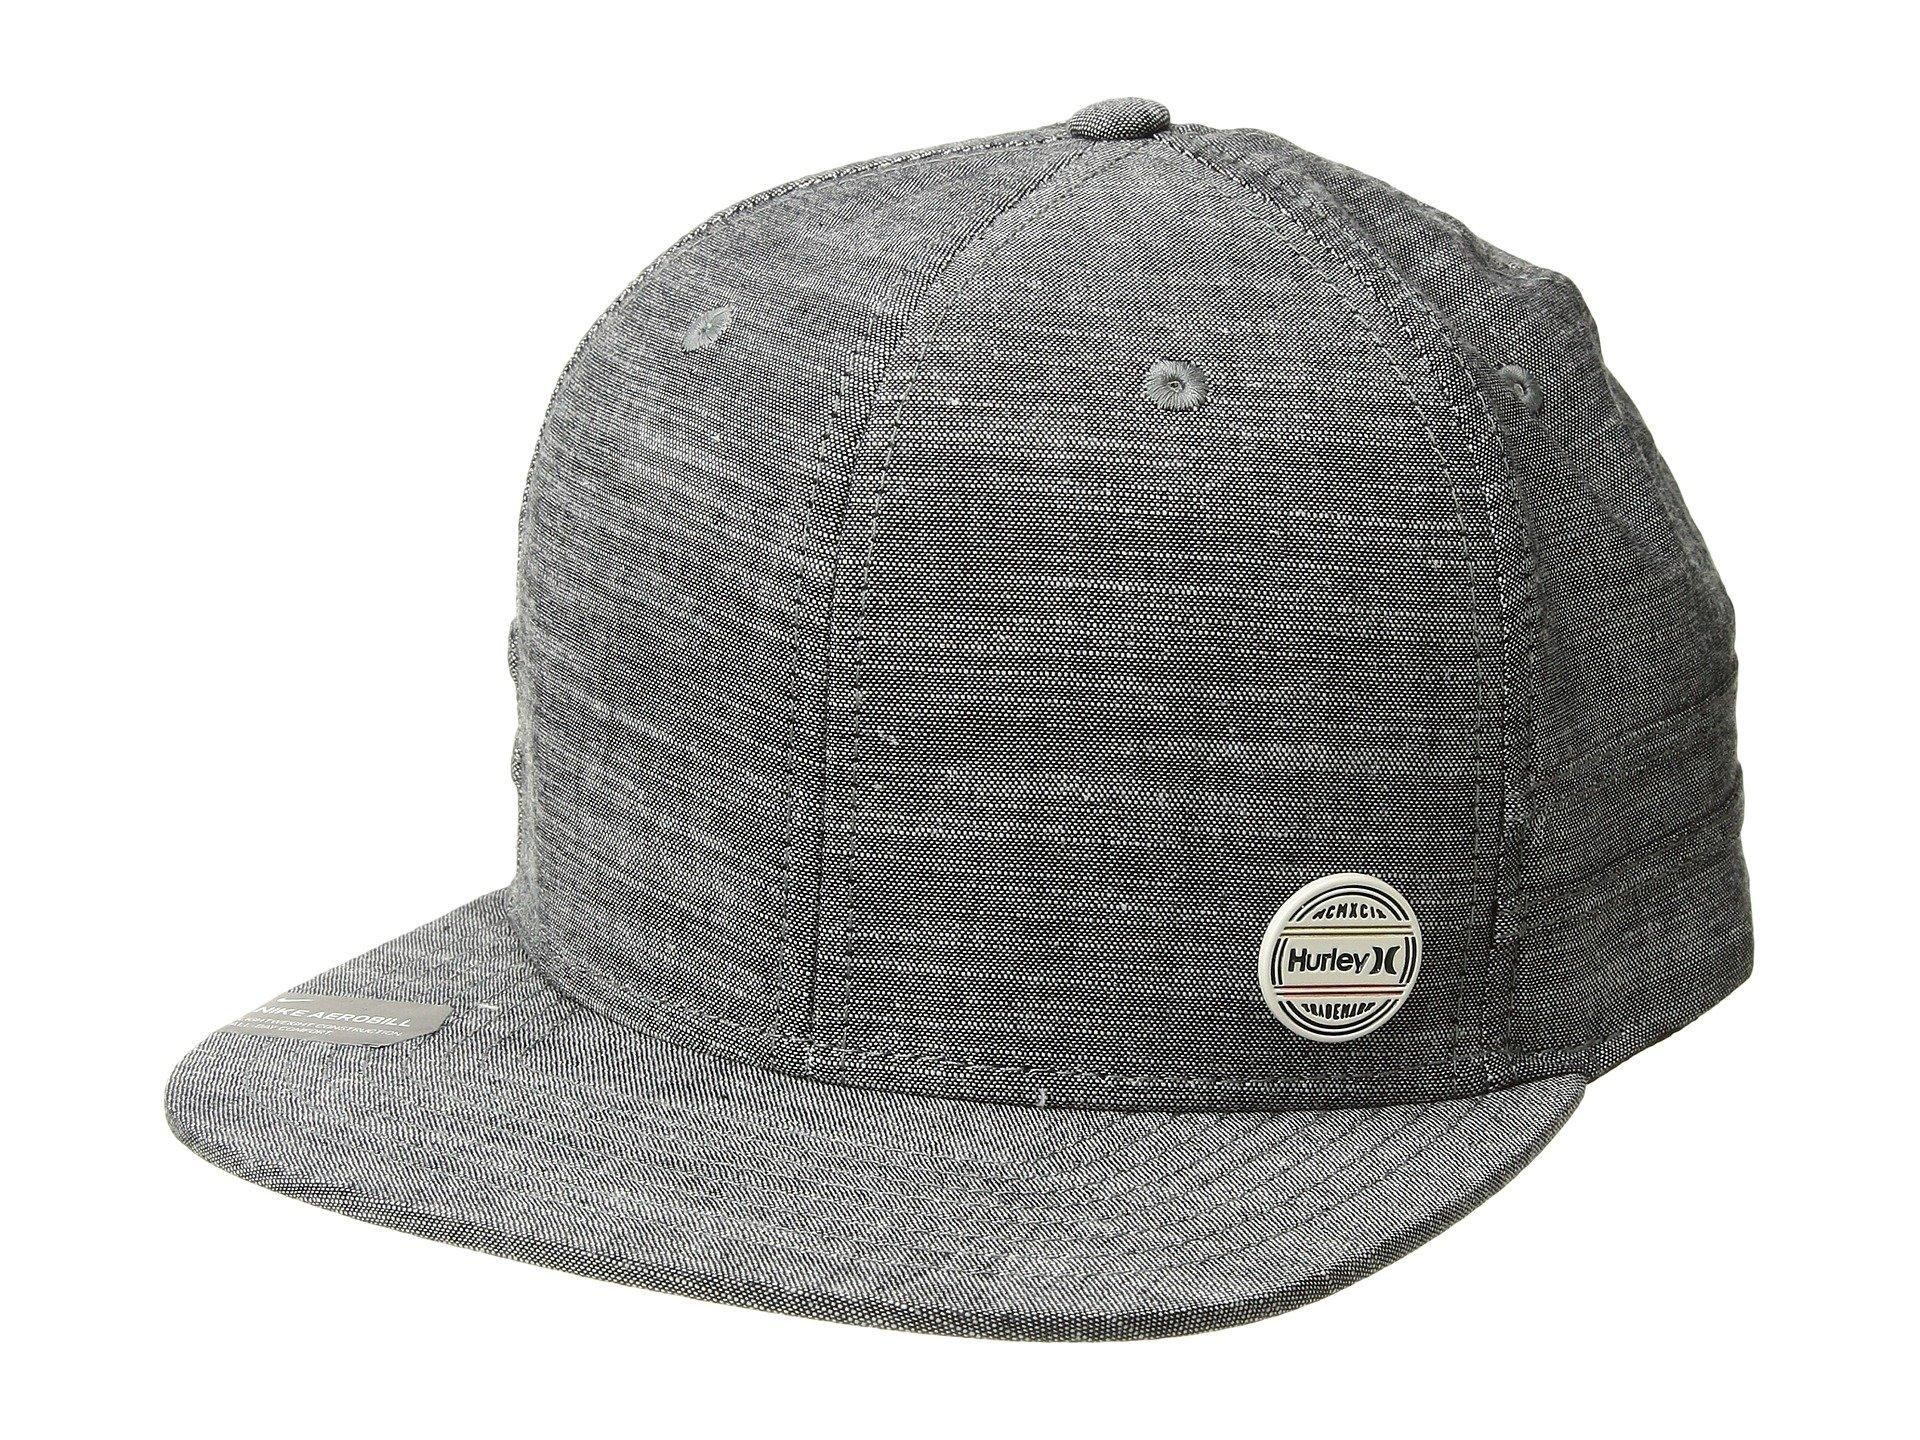 818a5714ae Lyst - Hurley Workpin Hat (black) Caps in Black for Men